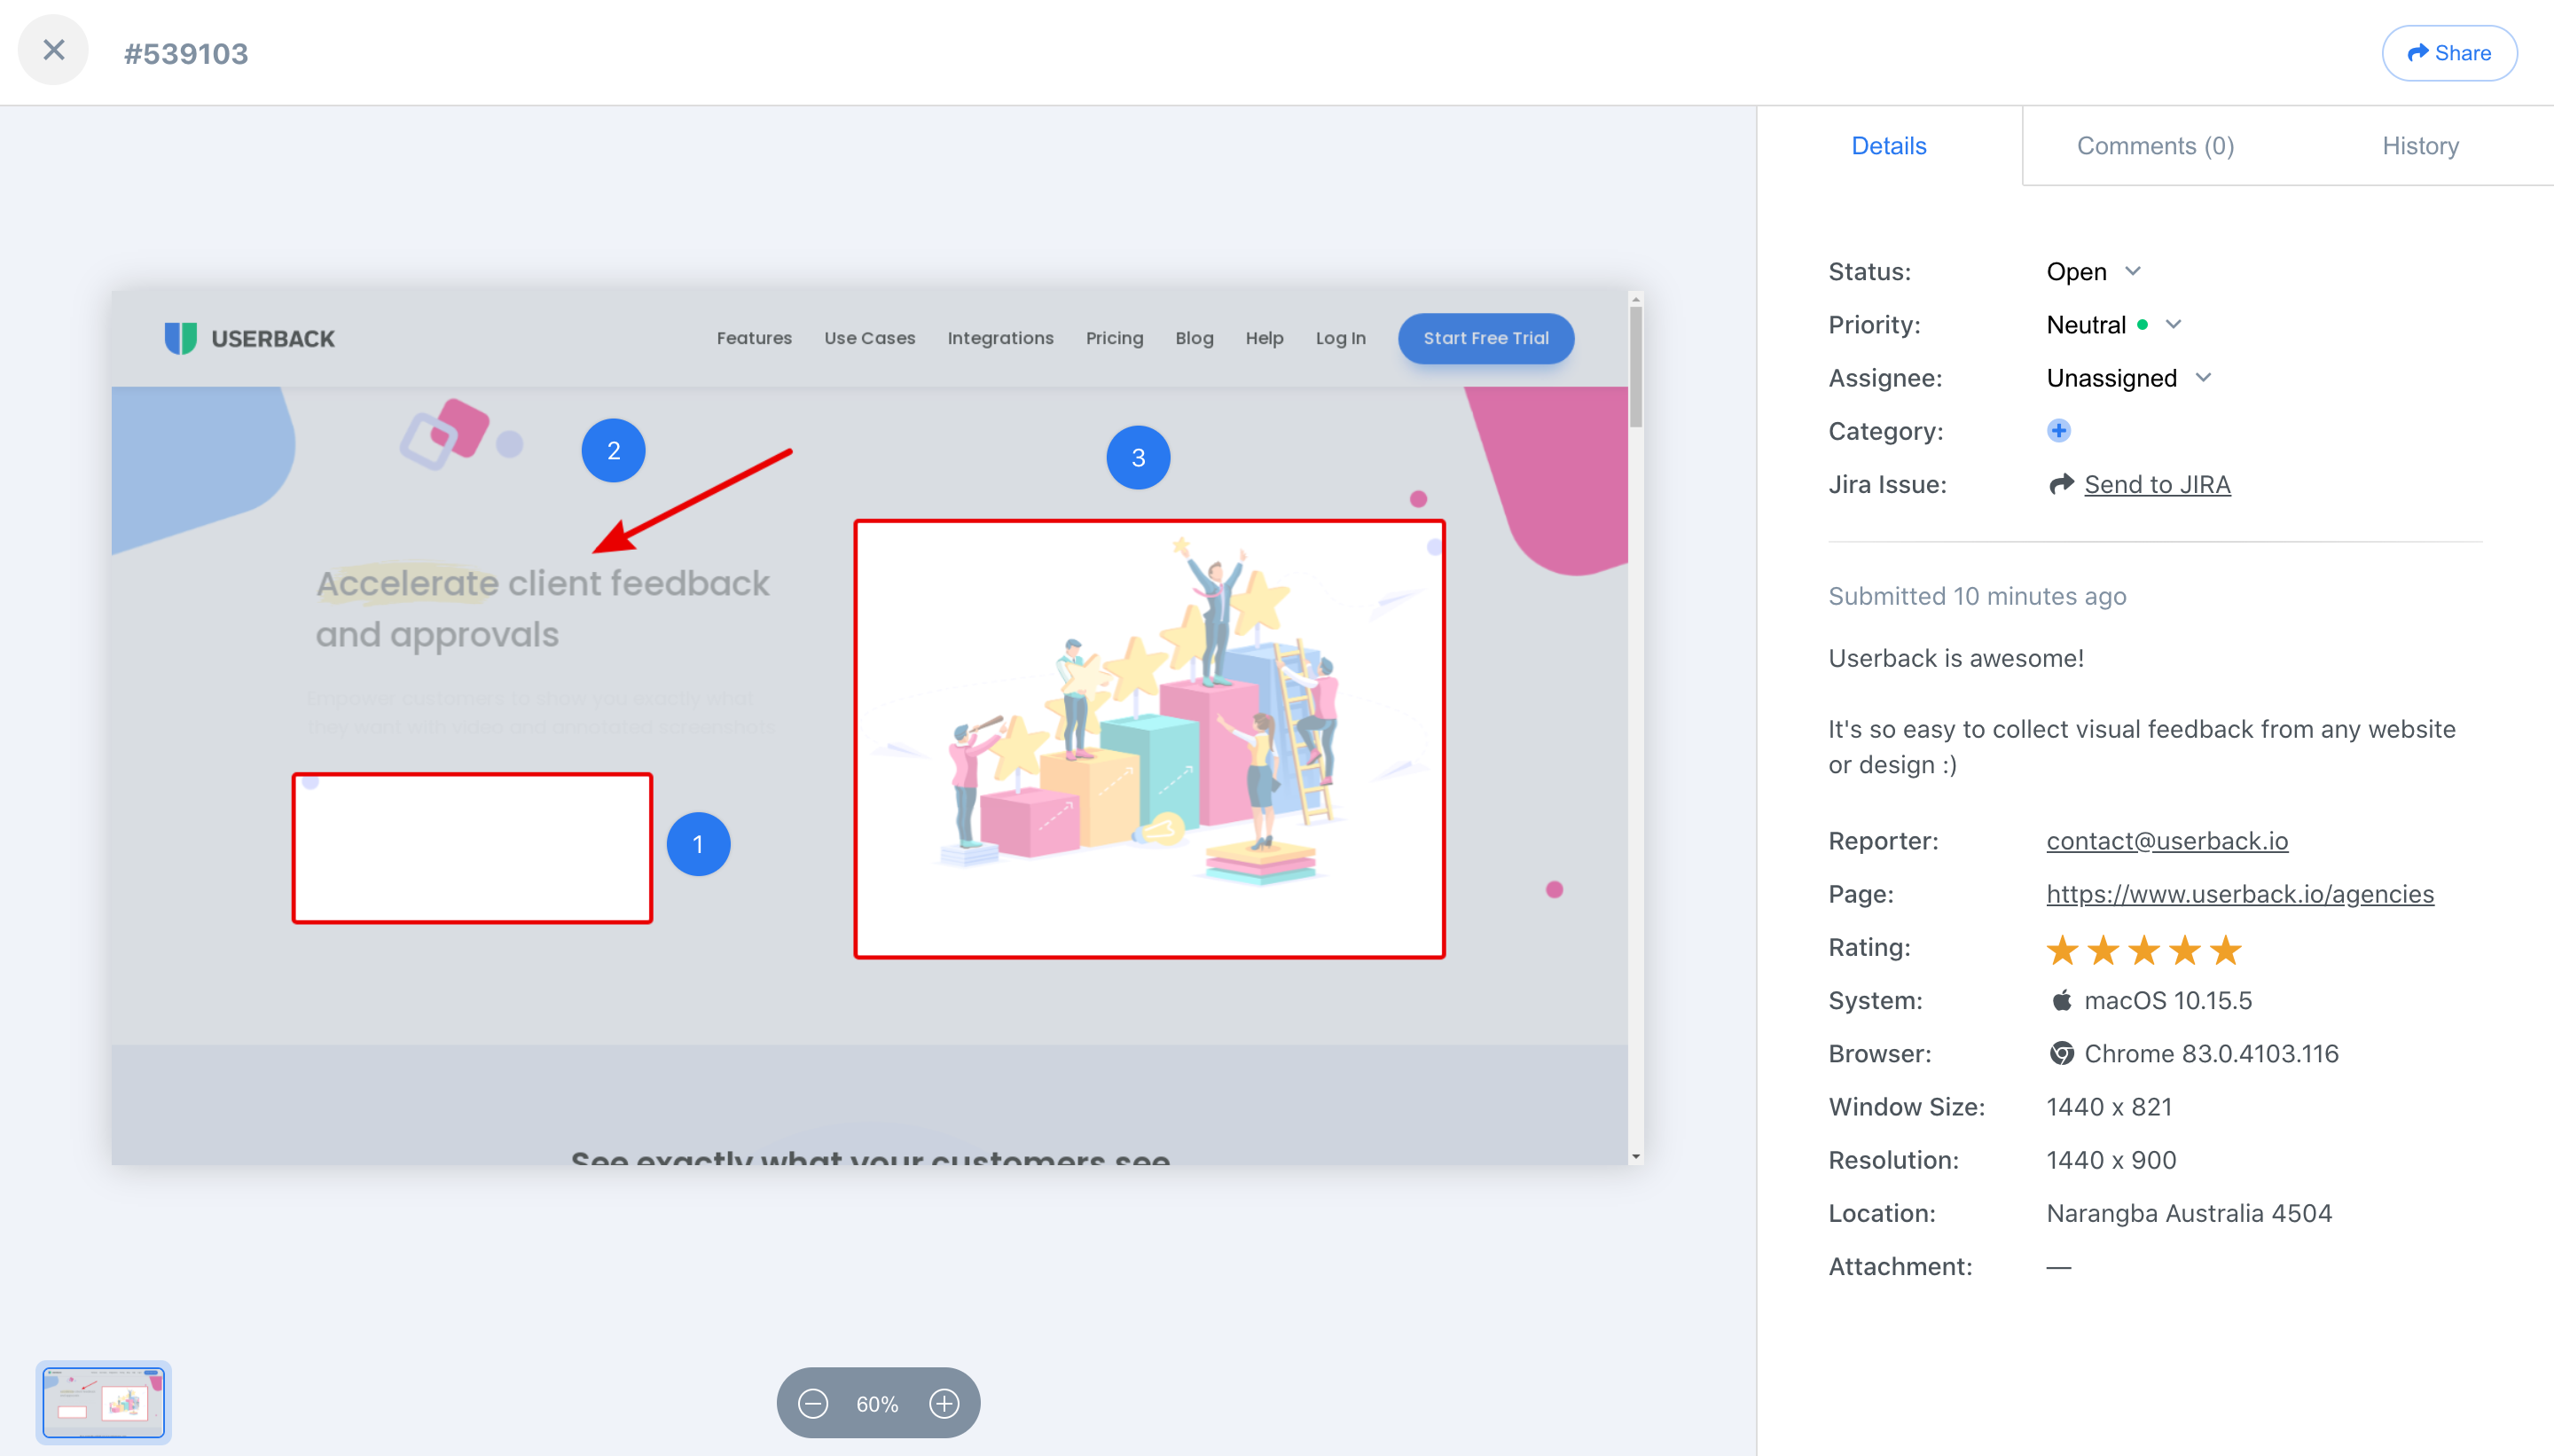 Easily manage feedback for all your web projects in the same place. Plus you can automatically capture browser and user information to save time when troubleshooting issues.